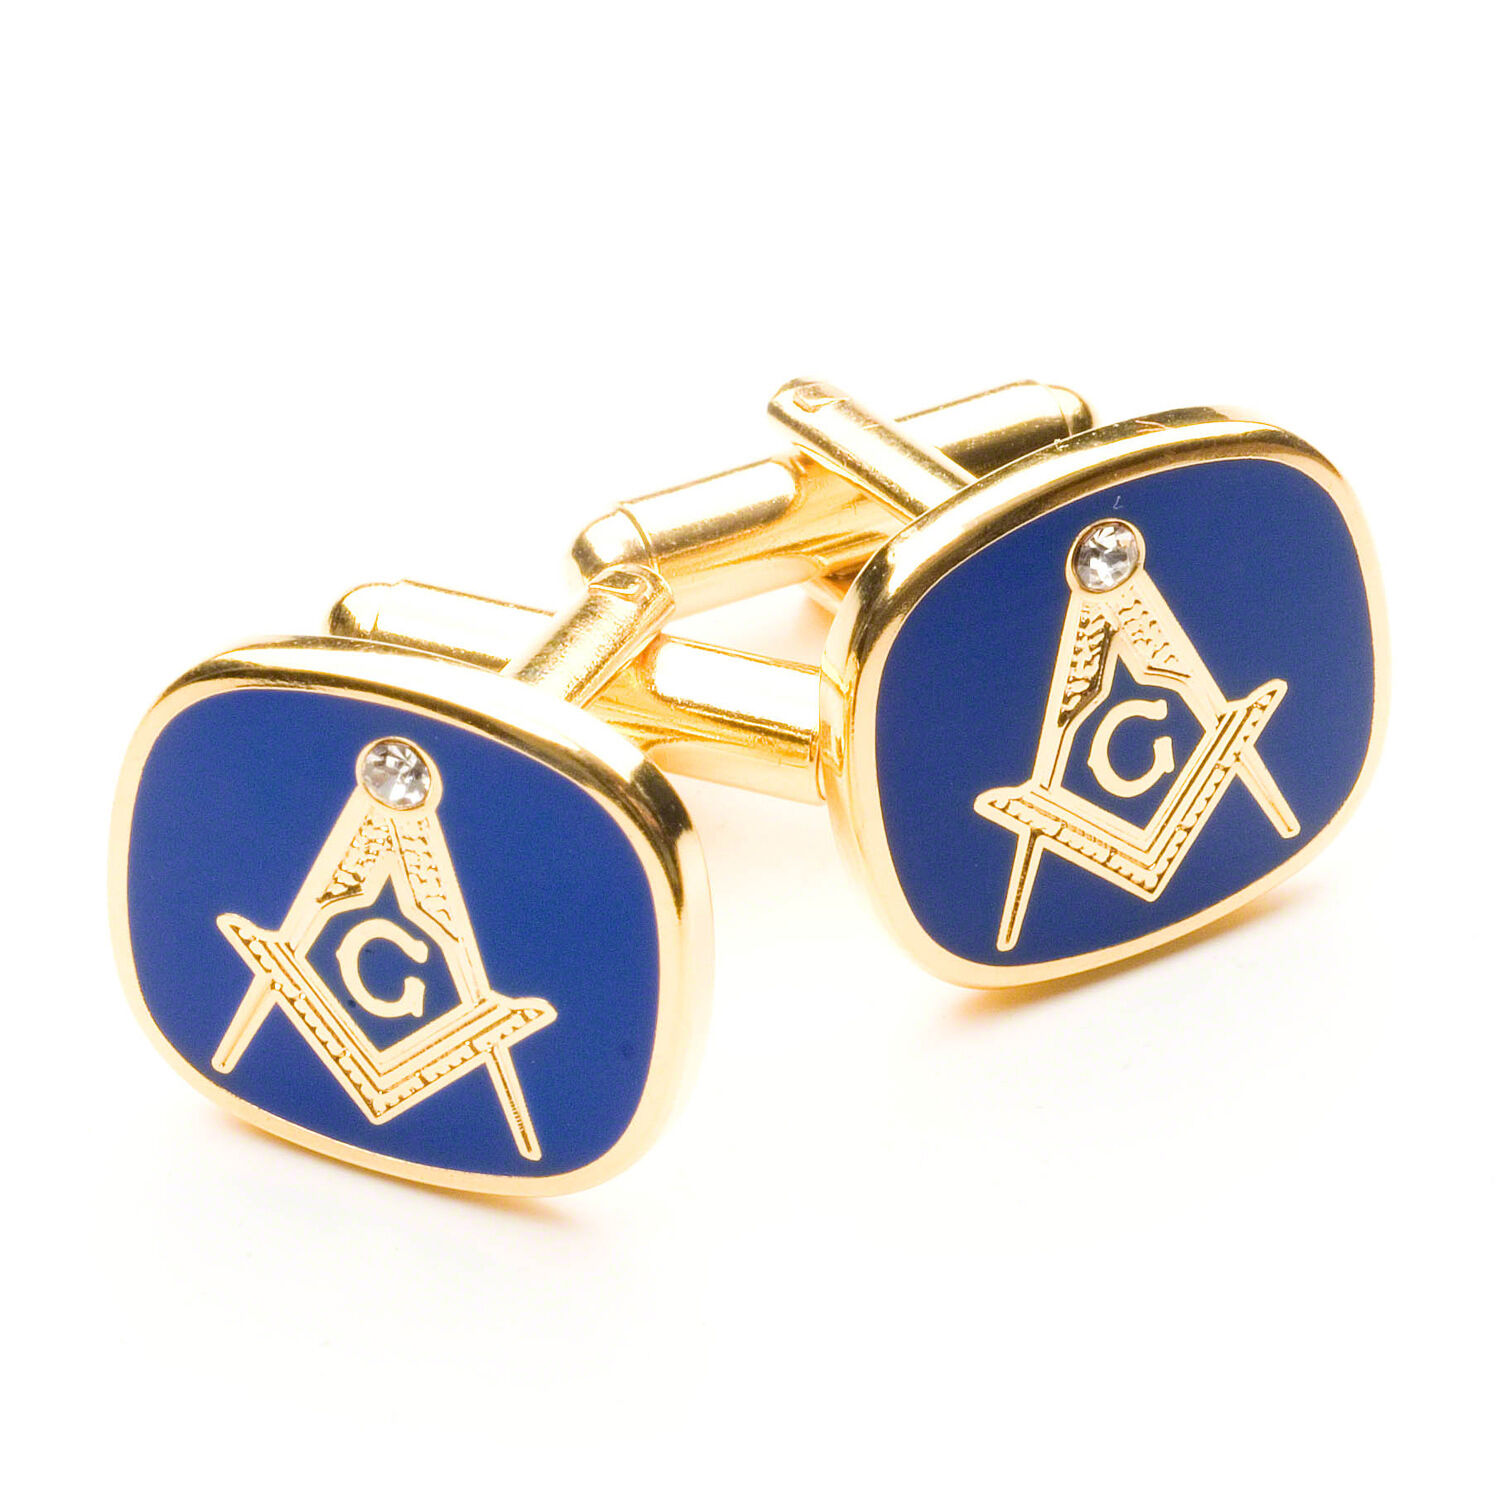 Stunning Blue Gold Masonic G Cufflinks With A White Stone Set In